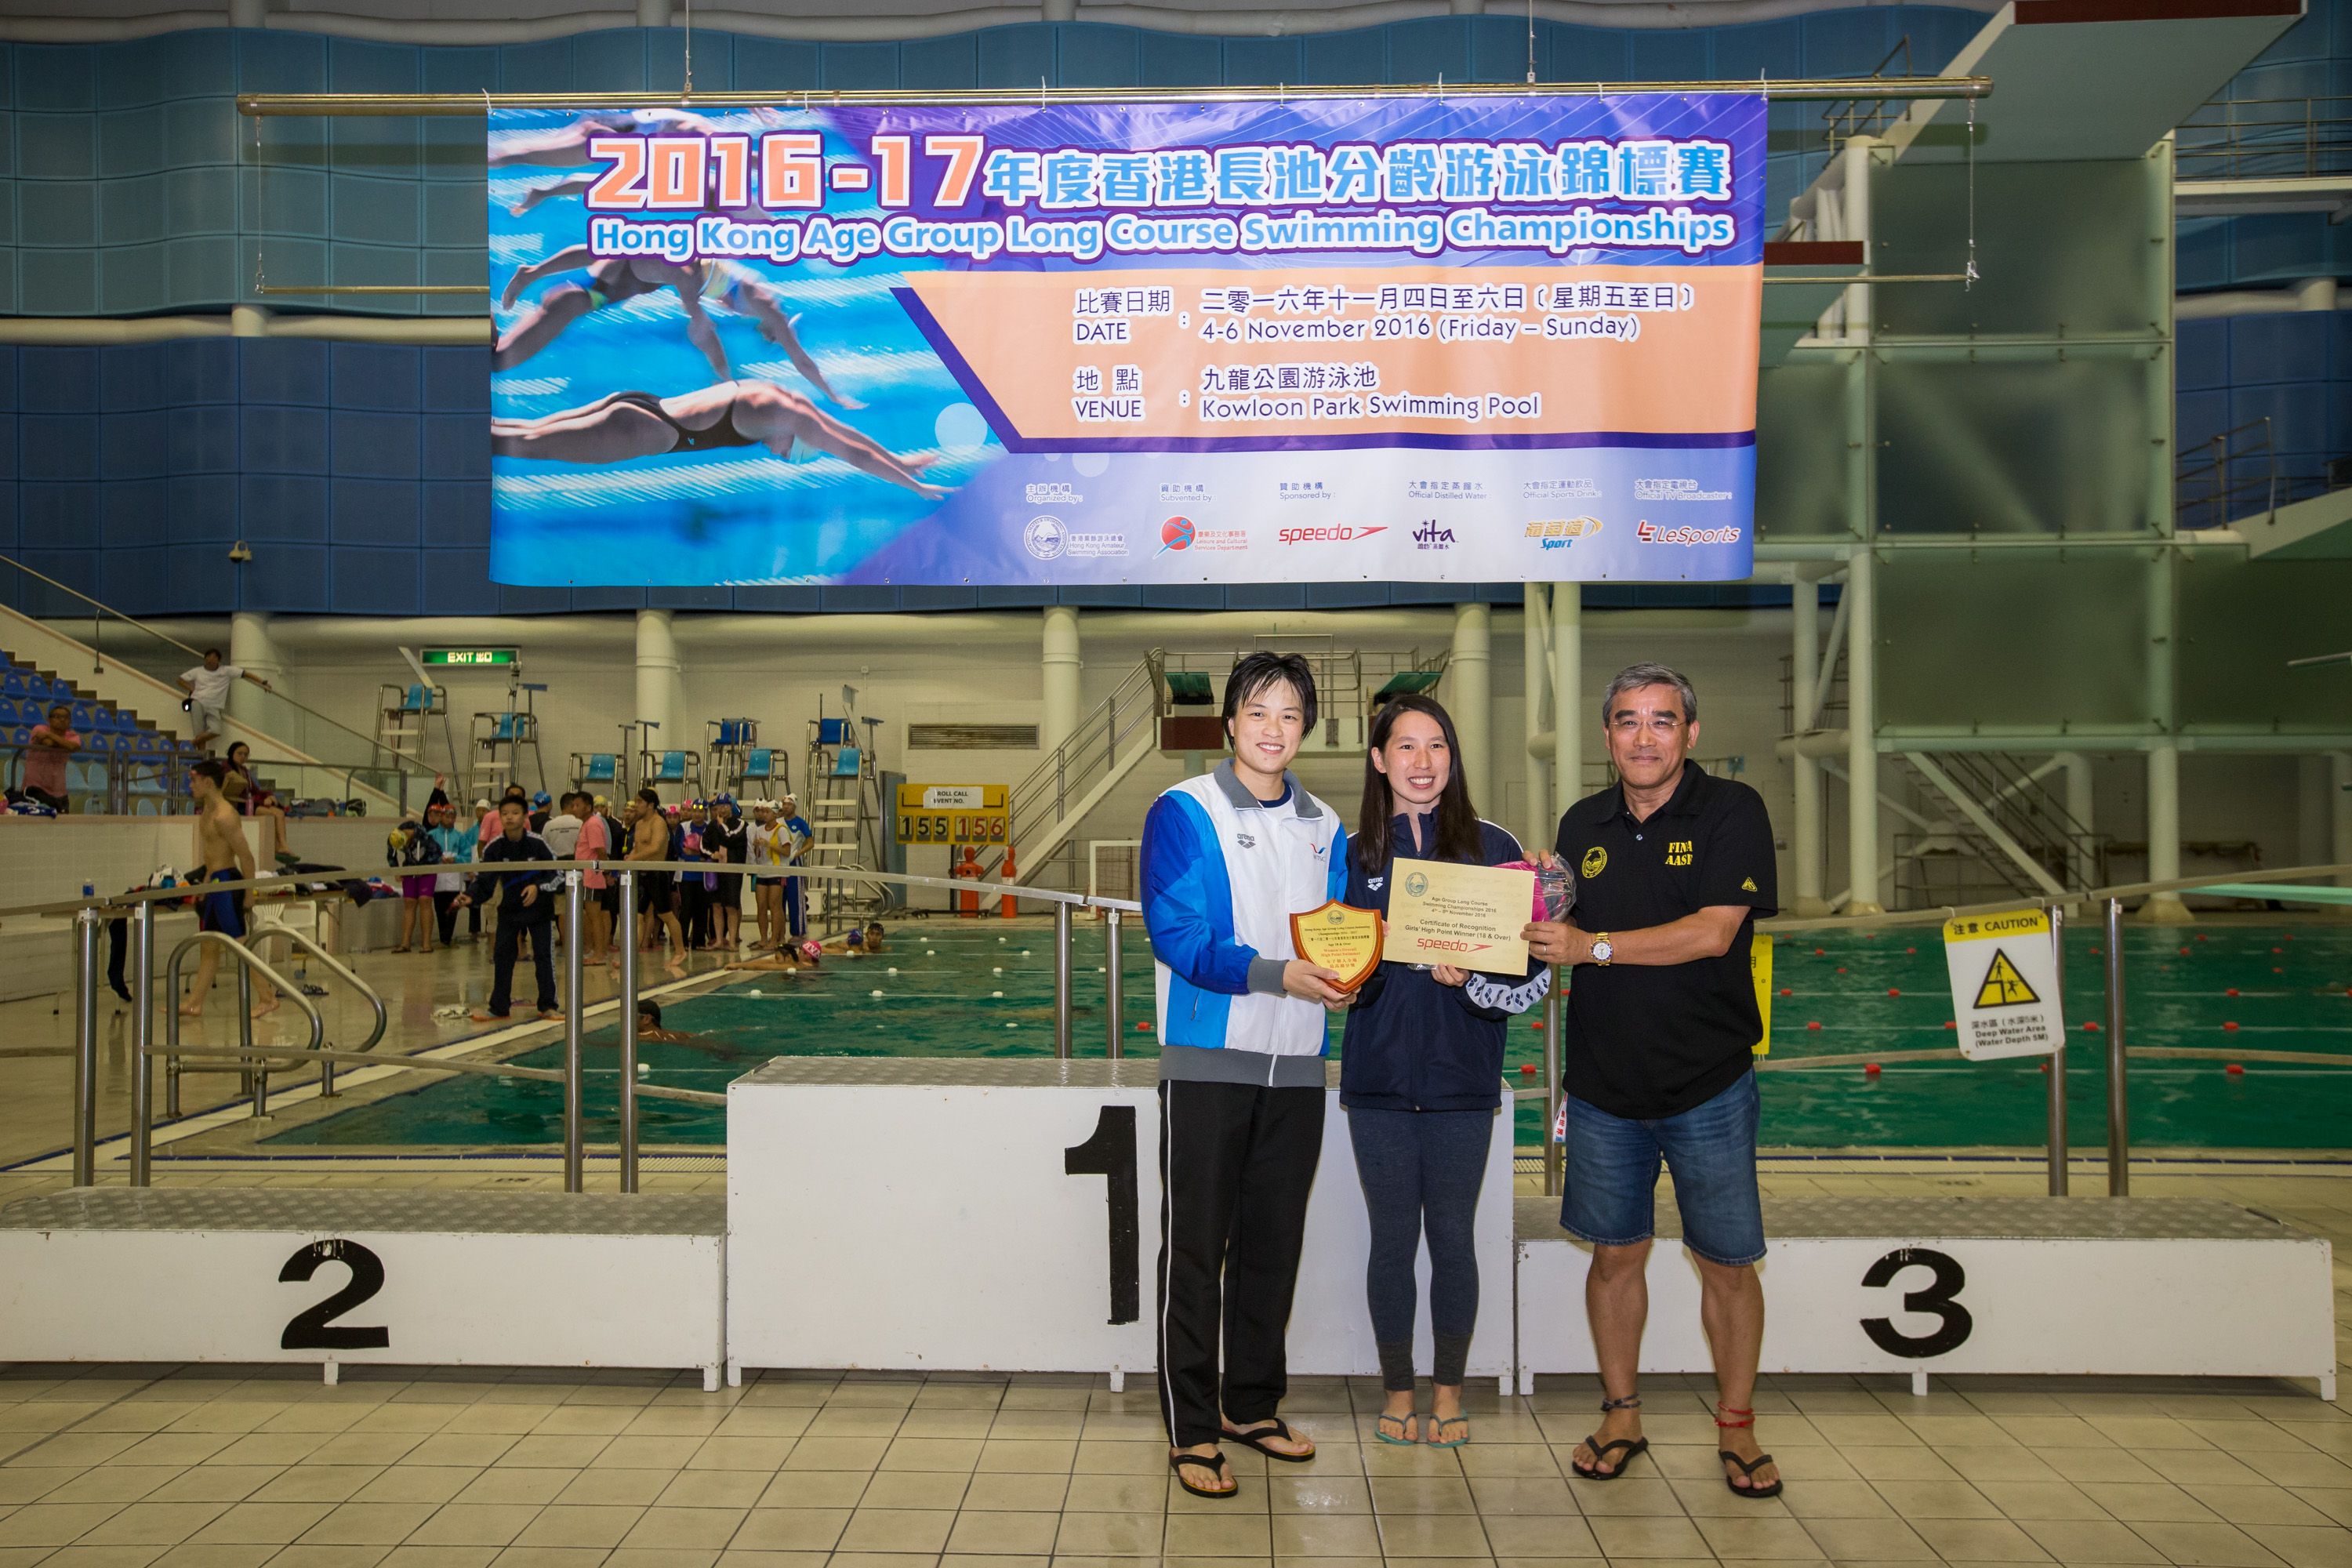 Win Tin Swimming Club - 2016 LCC Sze Hang Yu